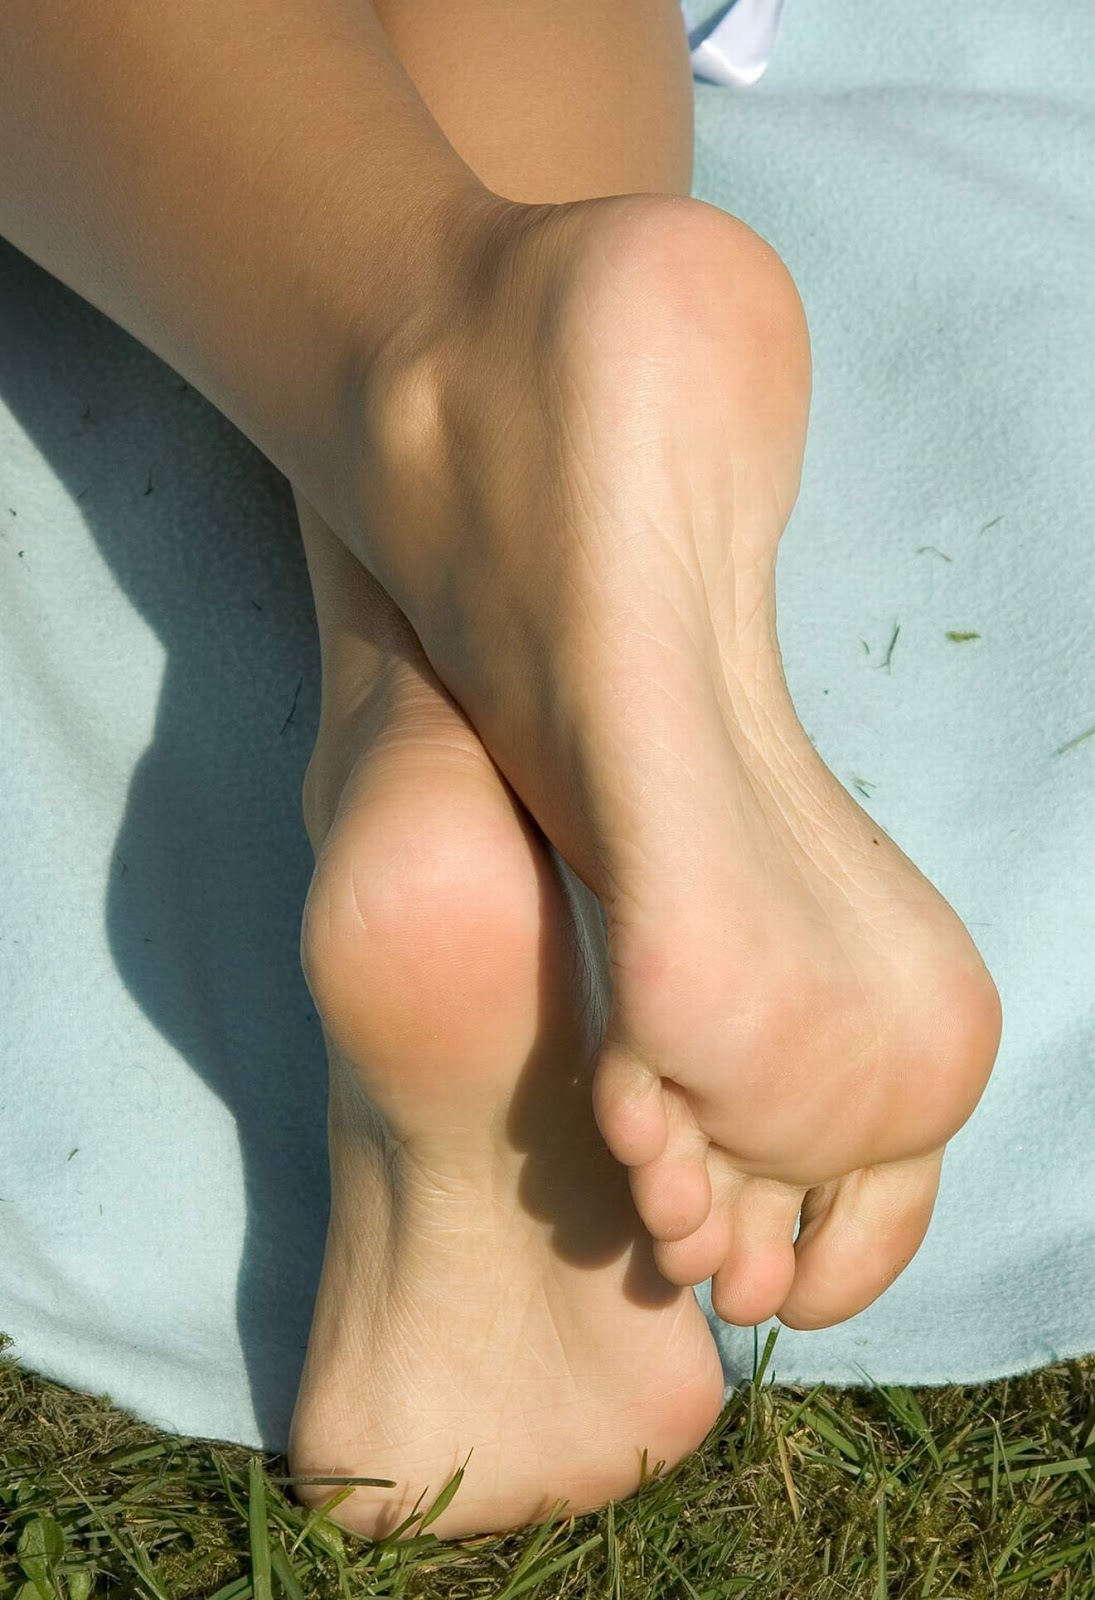 Footfetish love